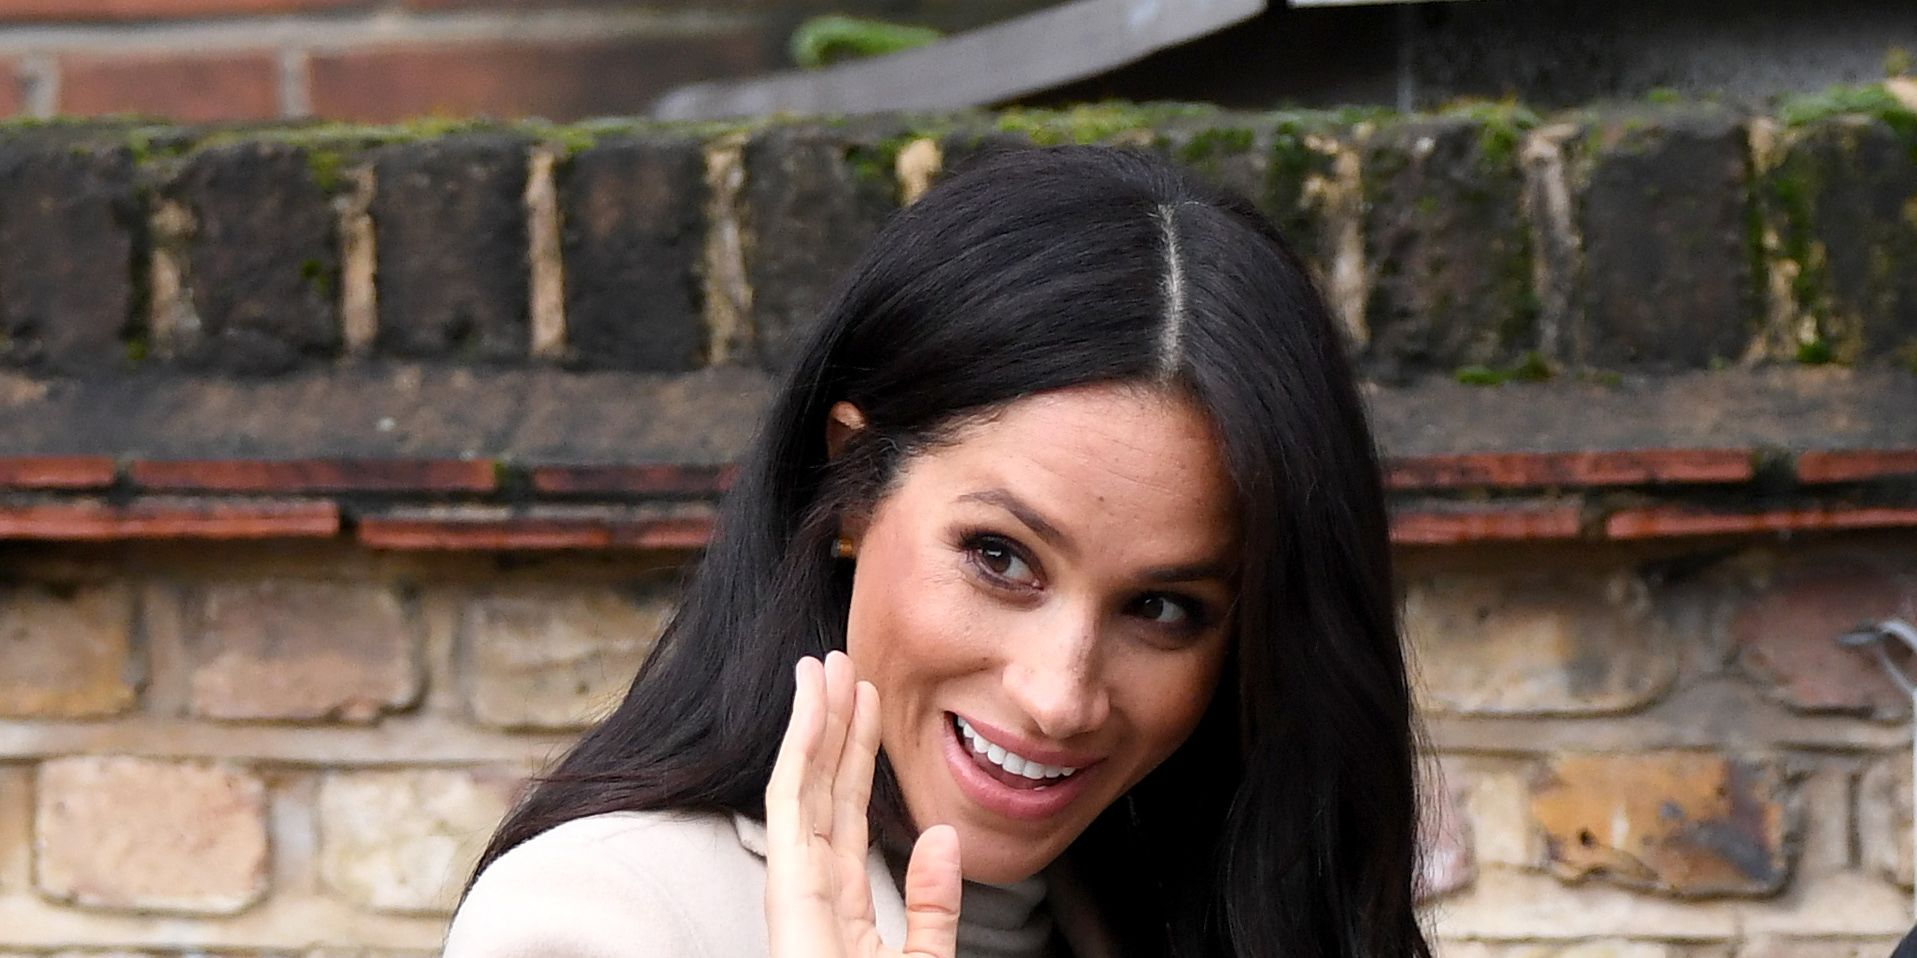 The Duchess Of Sussex Visits Mayhew Animal Welfare Charity